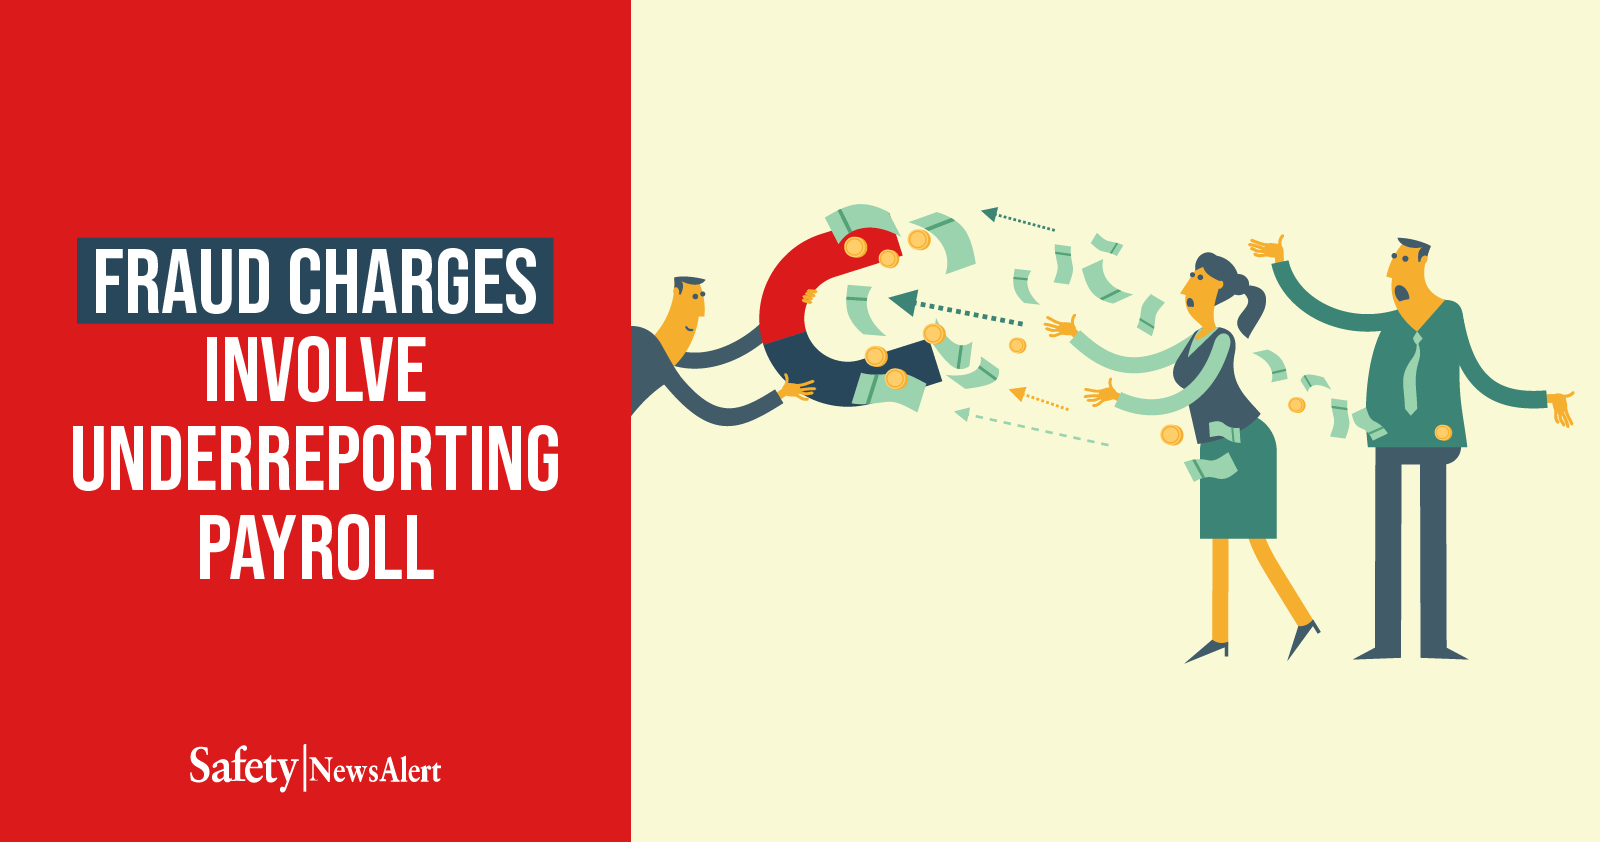 fraud charges involve underreporting payroll